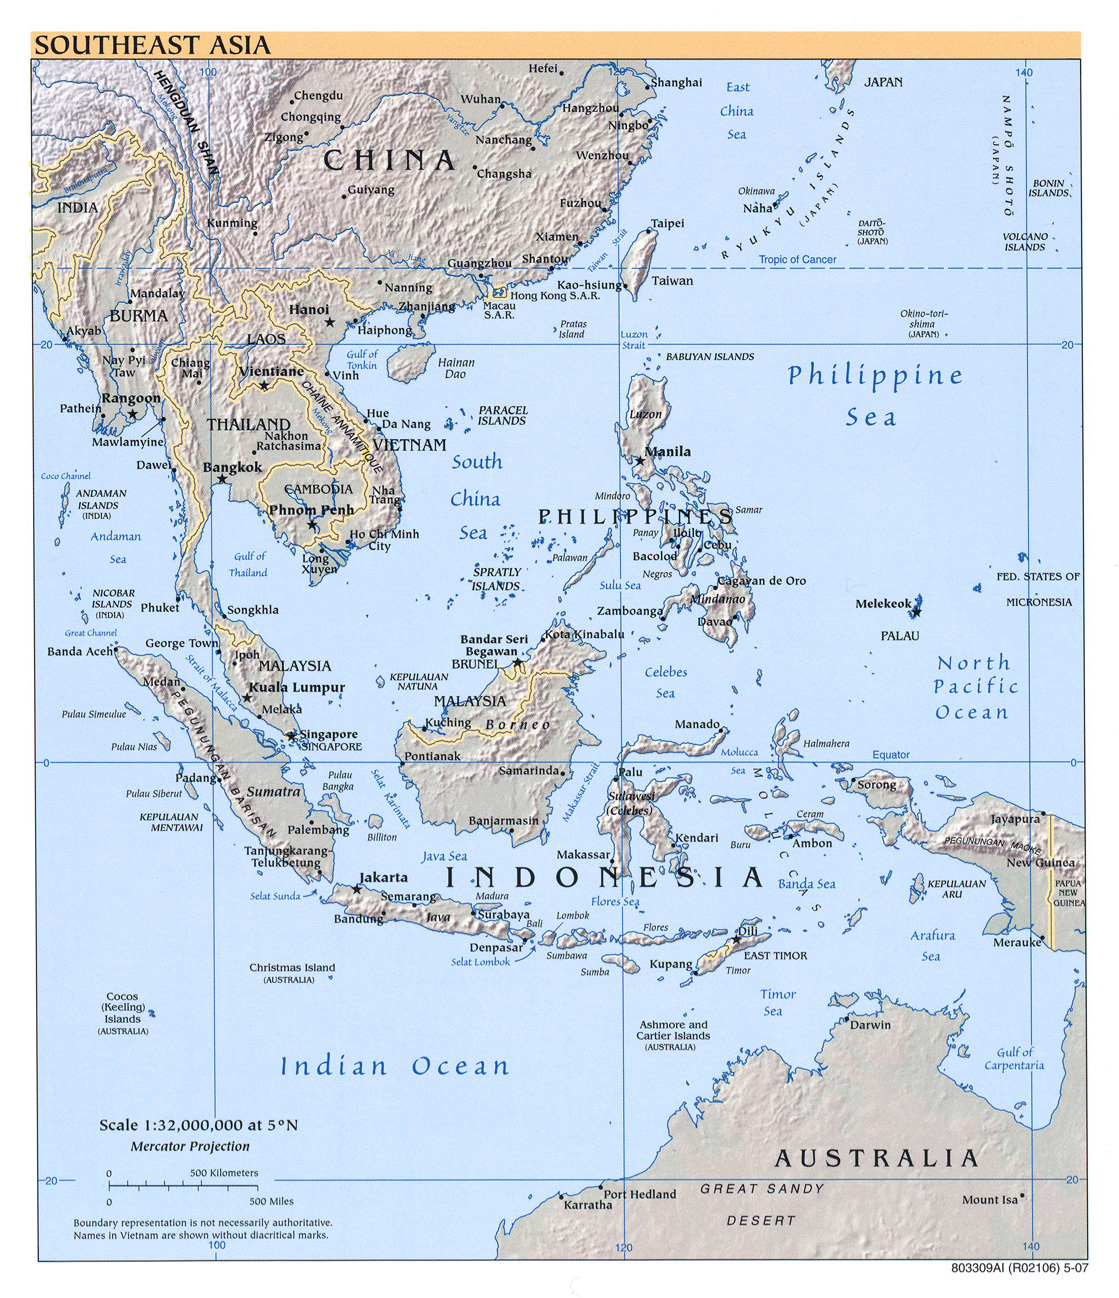 Blank Map Of East Asia And Oceania South asia maps south asia,